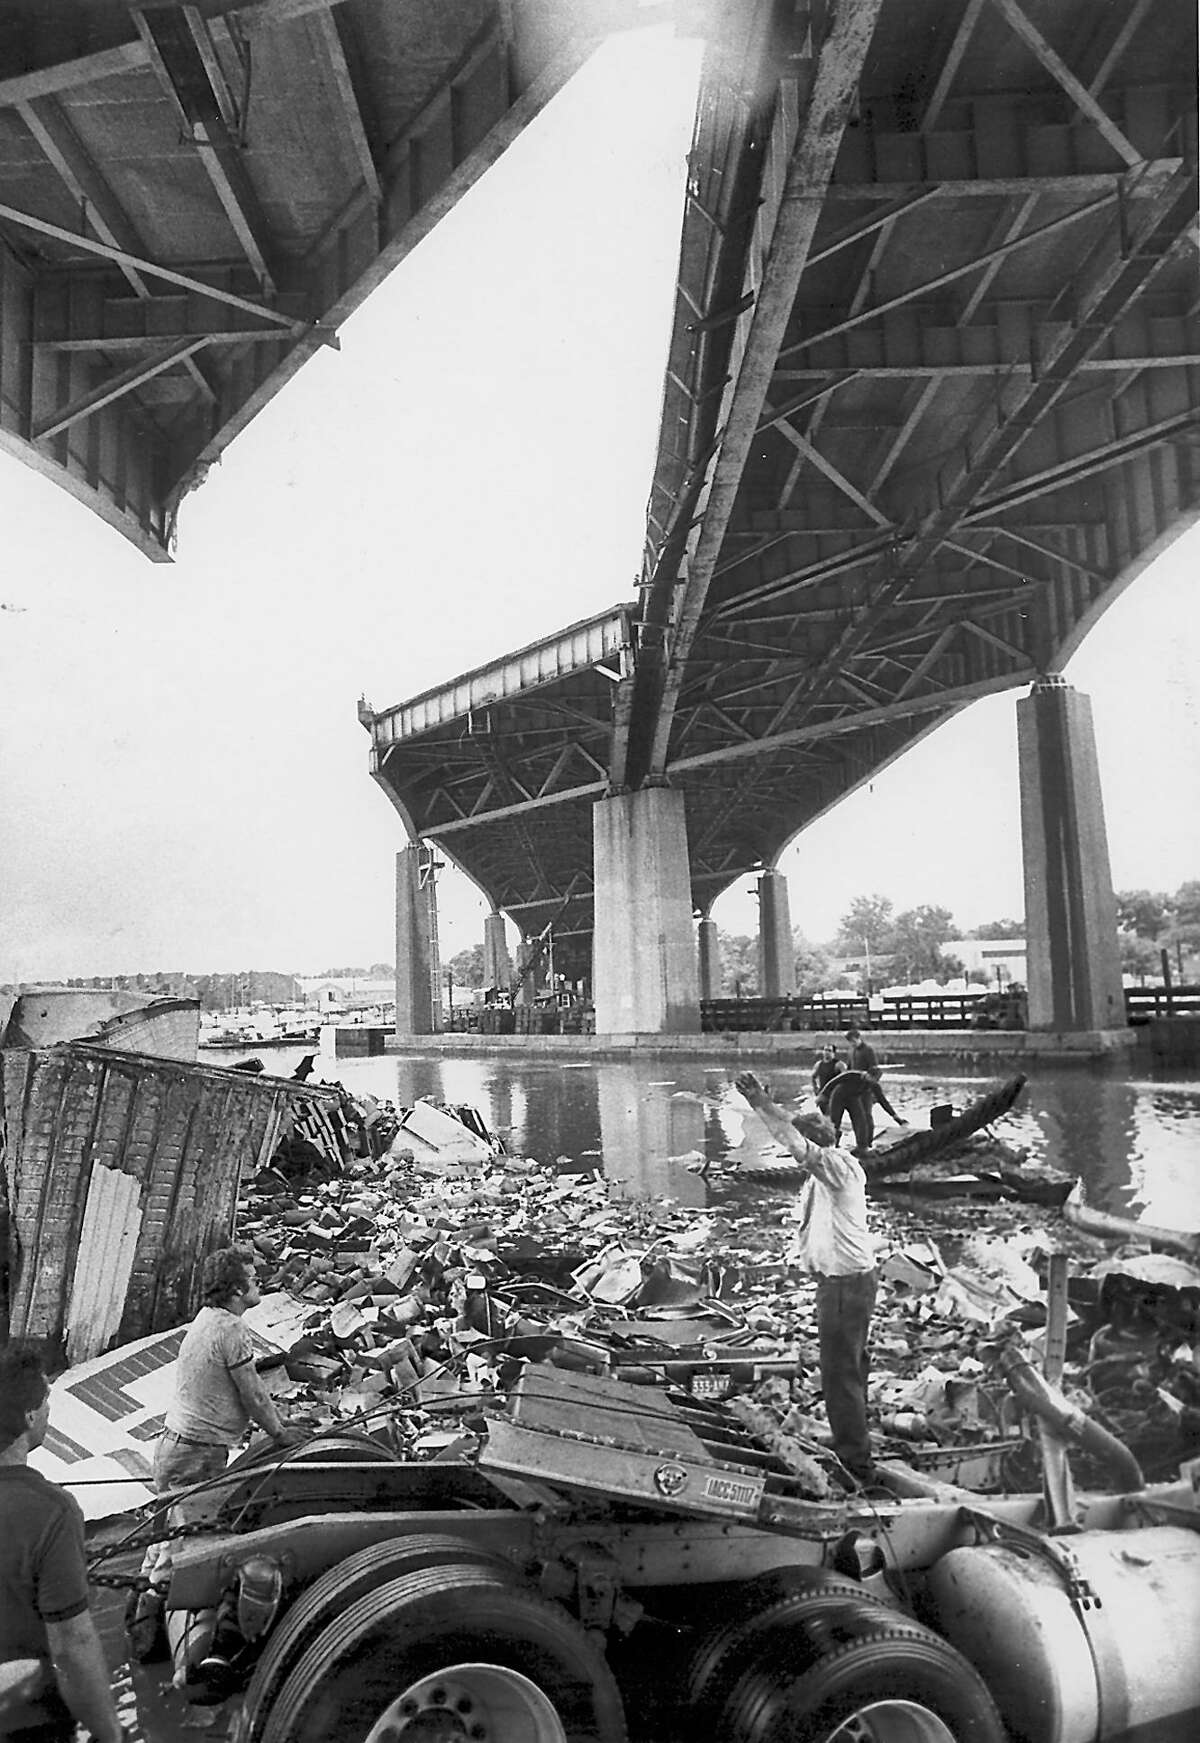 Mianus River Bridge Collapse June 28, 1983 - Tow operators attempt to clear wreckage under I-95. In foreground is part of the tractor trailer truck that fell. Photo/Tom Ondrey b/w